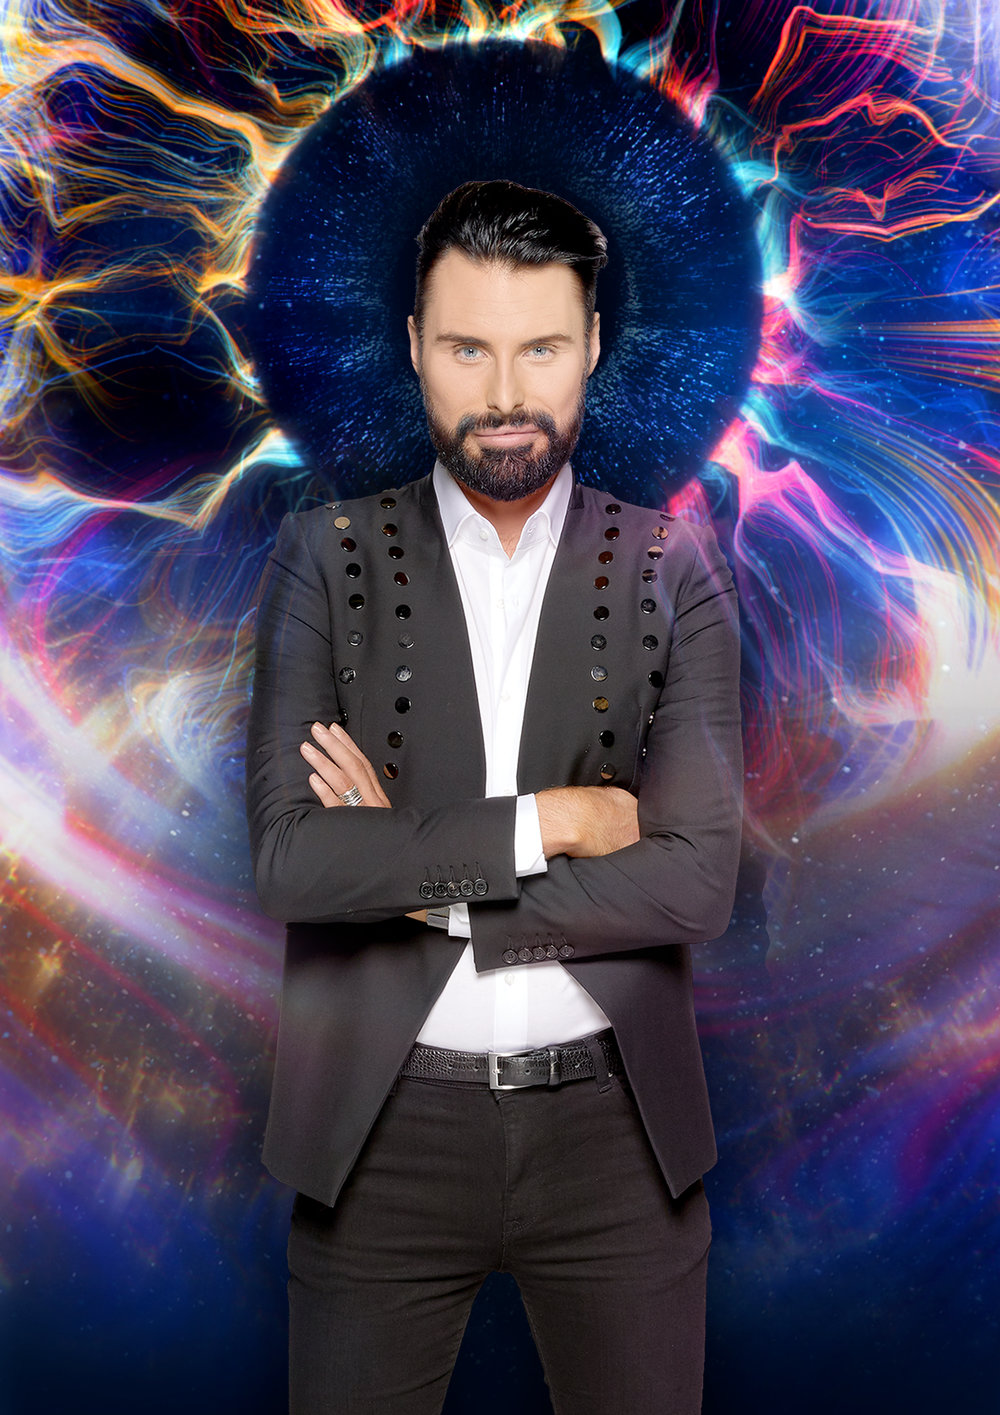 Big_Brother_Presenter_Rylan__embargo4thSep2018.jpg